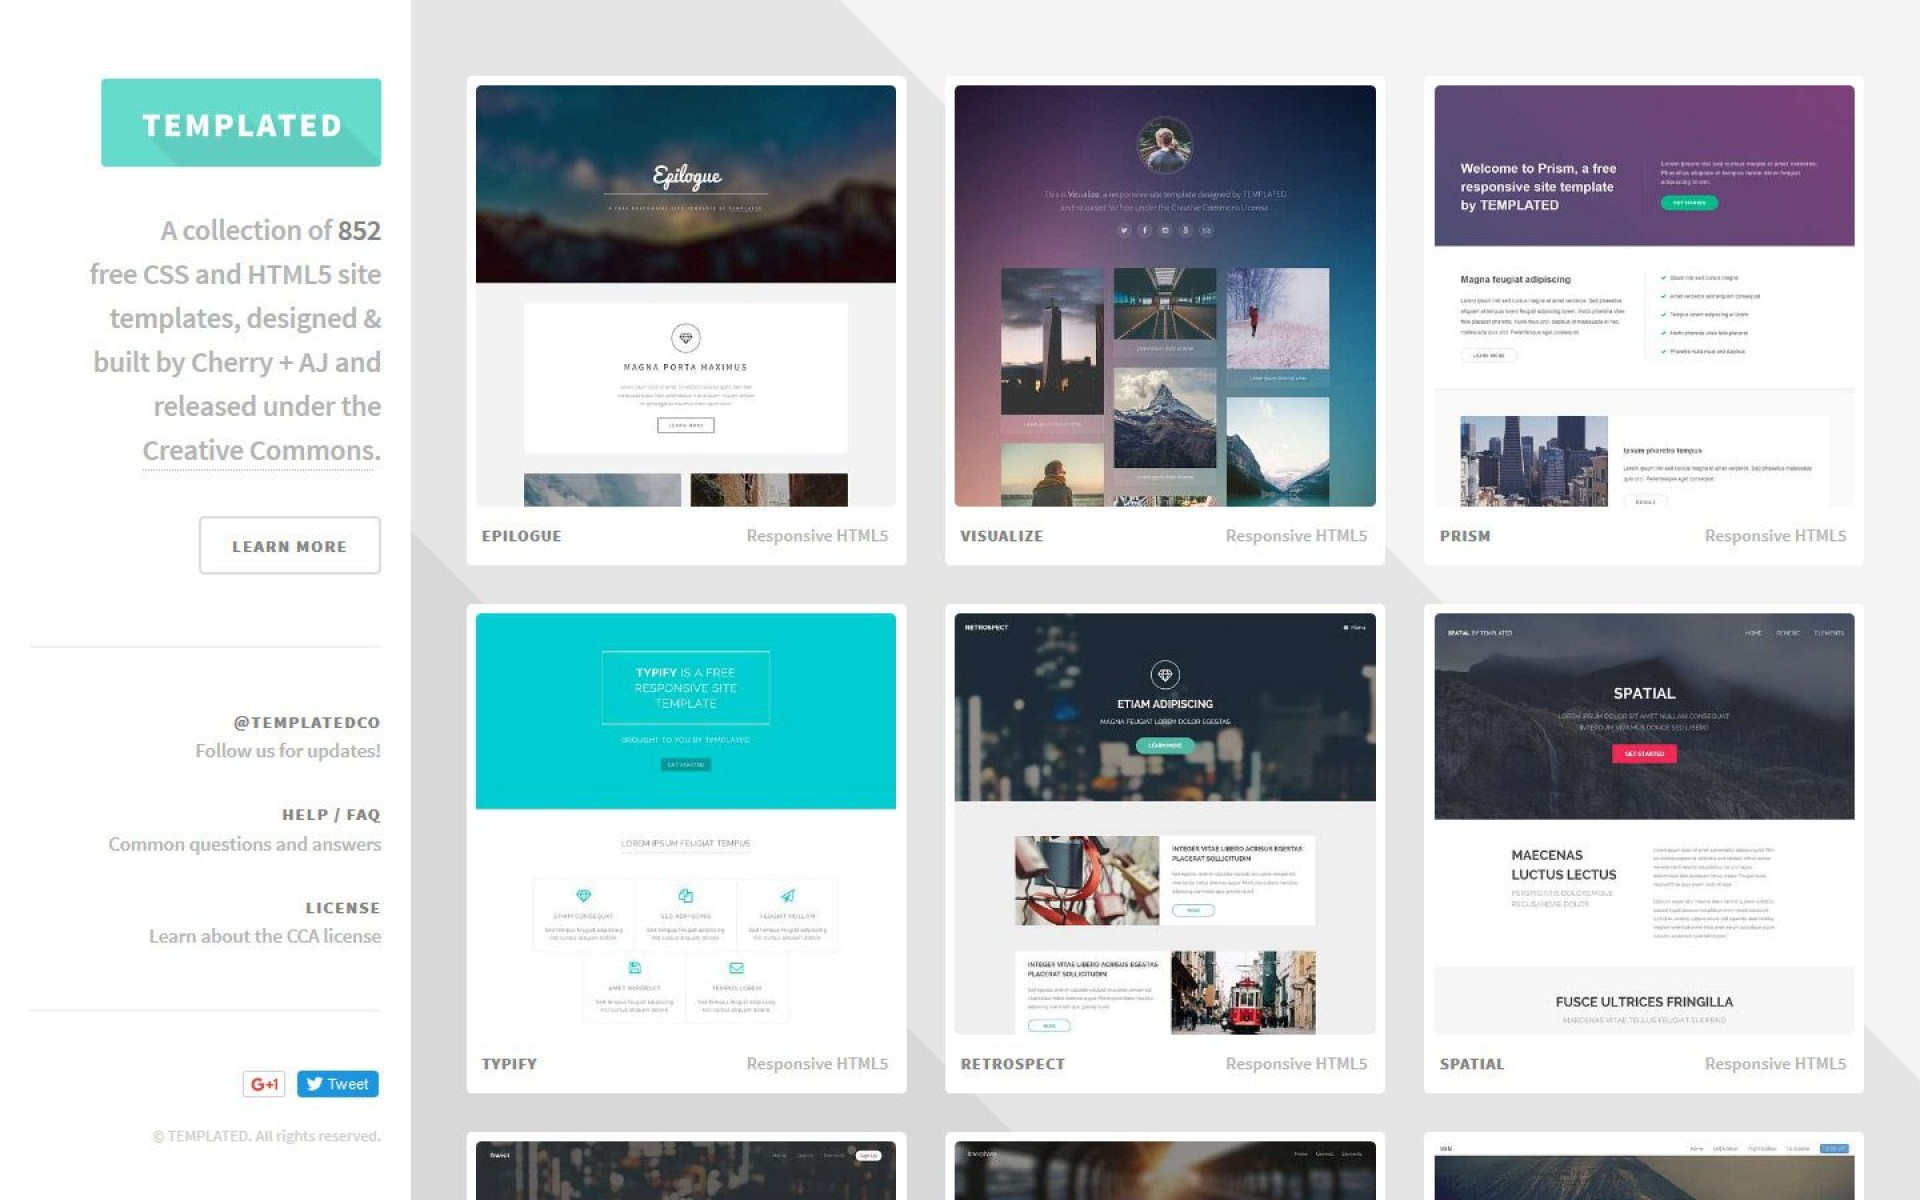 002 Wondrou Web Template Html Cs Free Download Image  Responsive Website With Javascript In Jquery Ecommerce1920